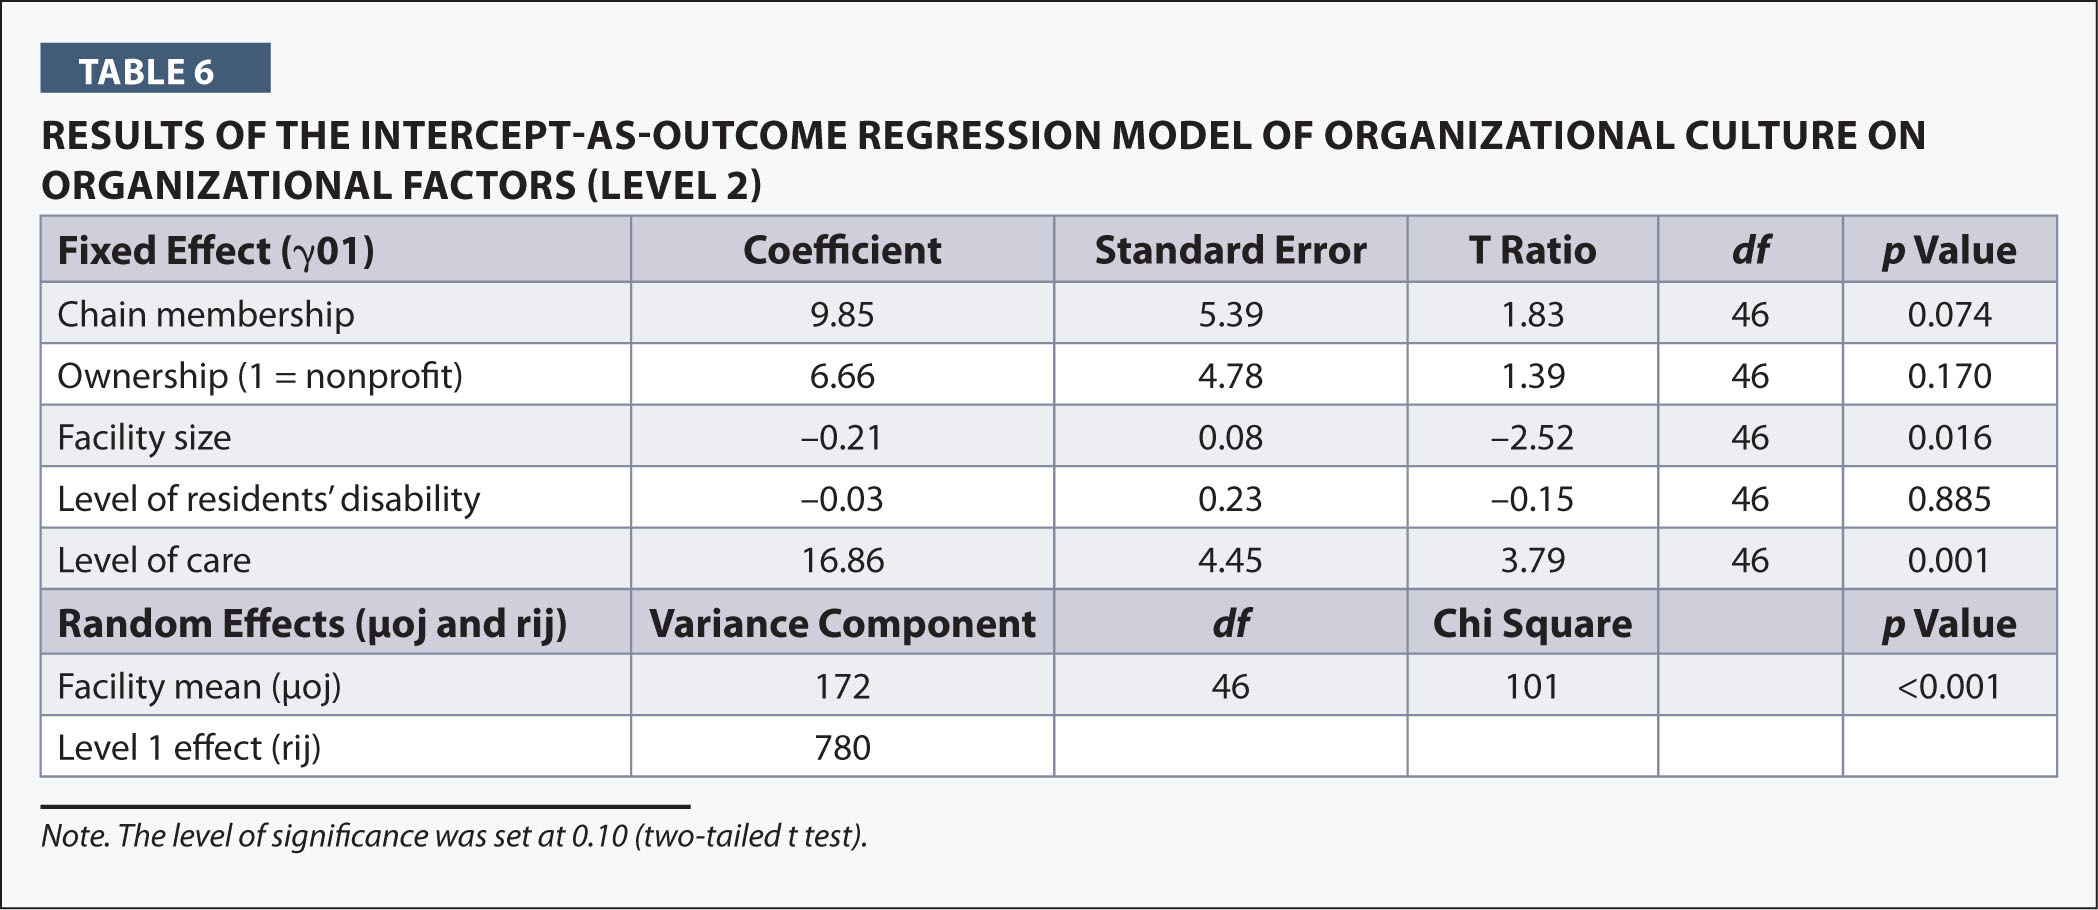 Results of the Intercept-As-Outcome Regression Model of Organizational Culture on Organizational Factors (Level 2)